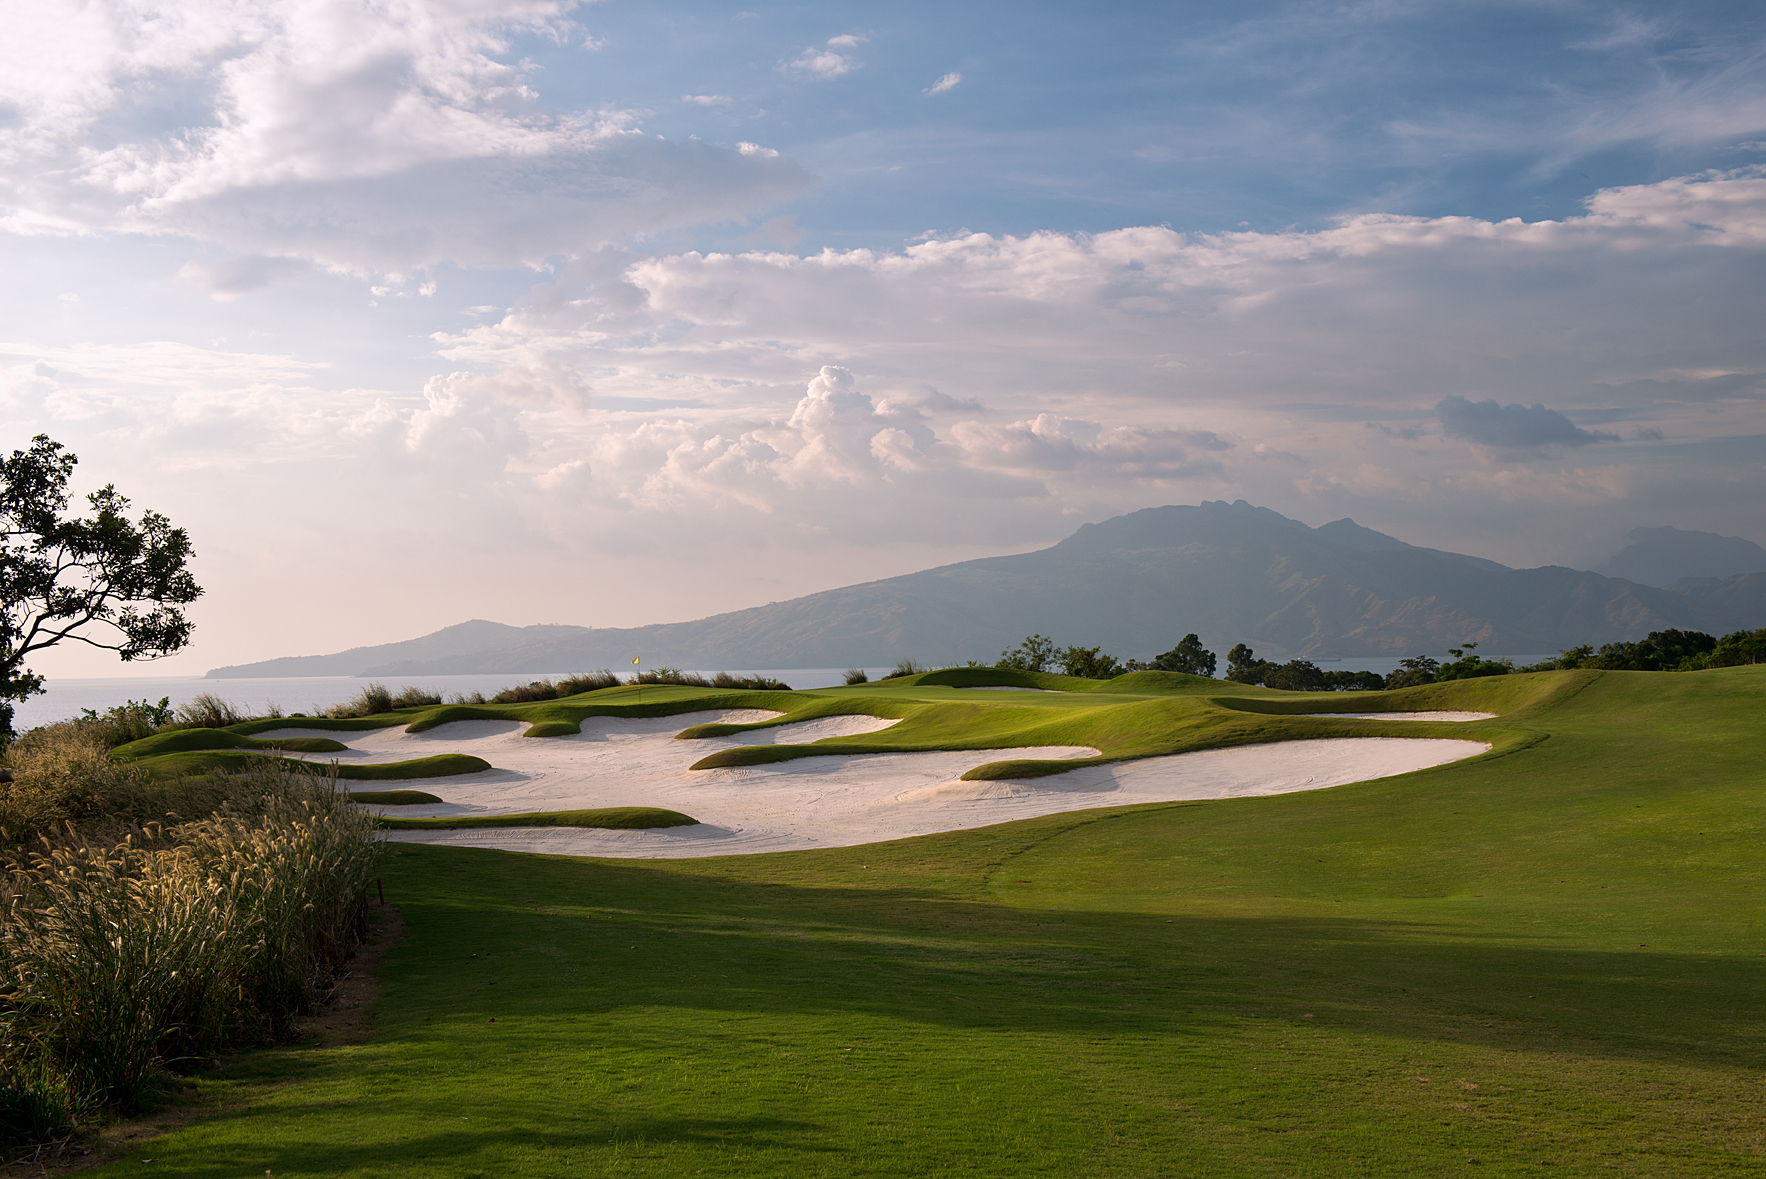 Anvaya Cove Golf and Sports Club Subic Bay, Philippines